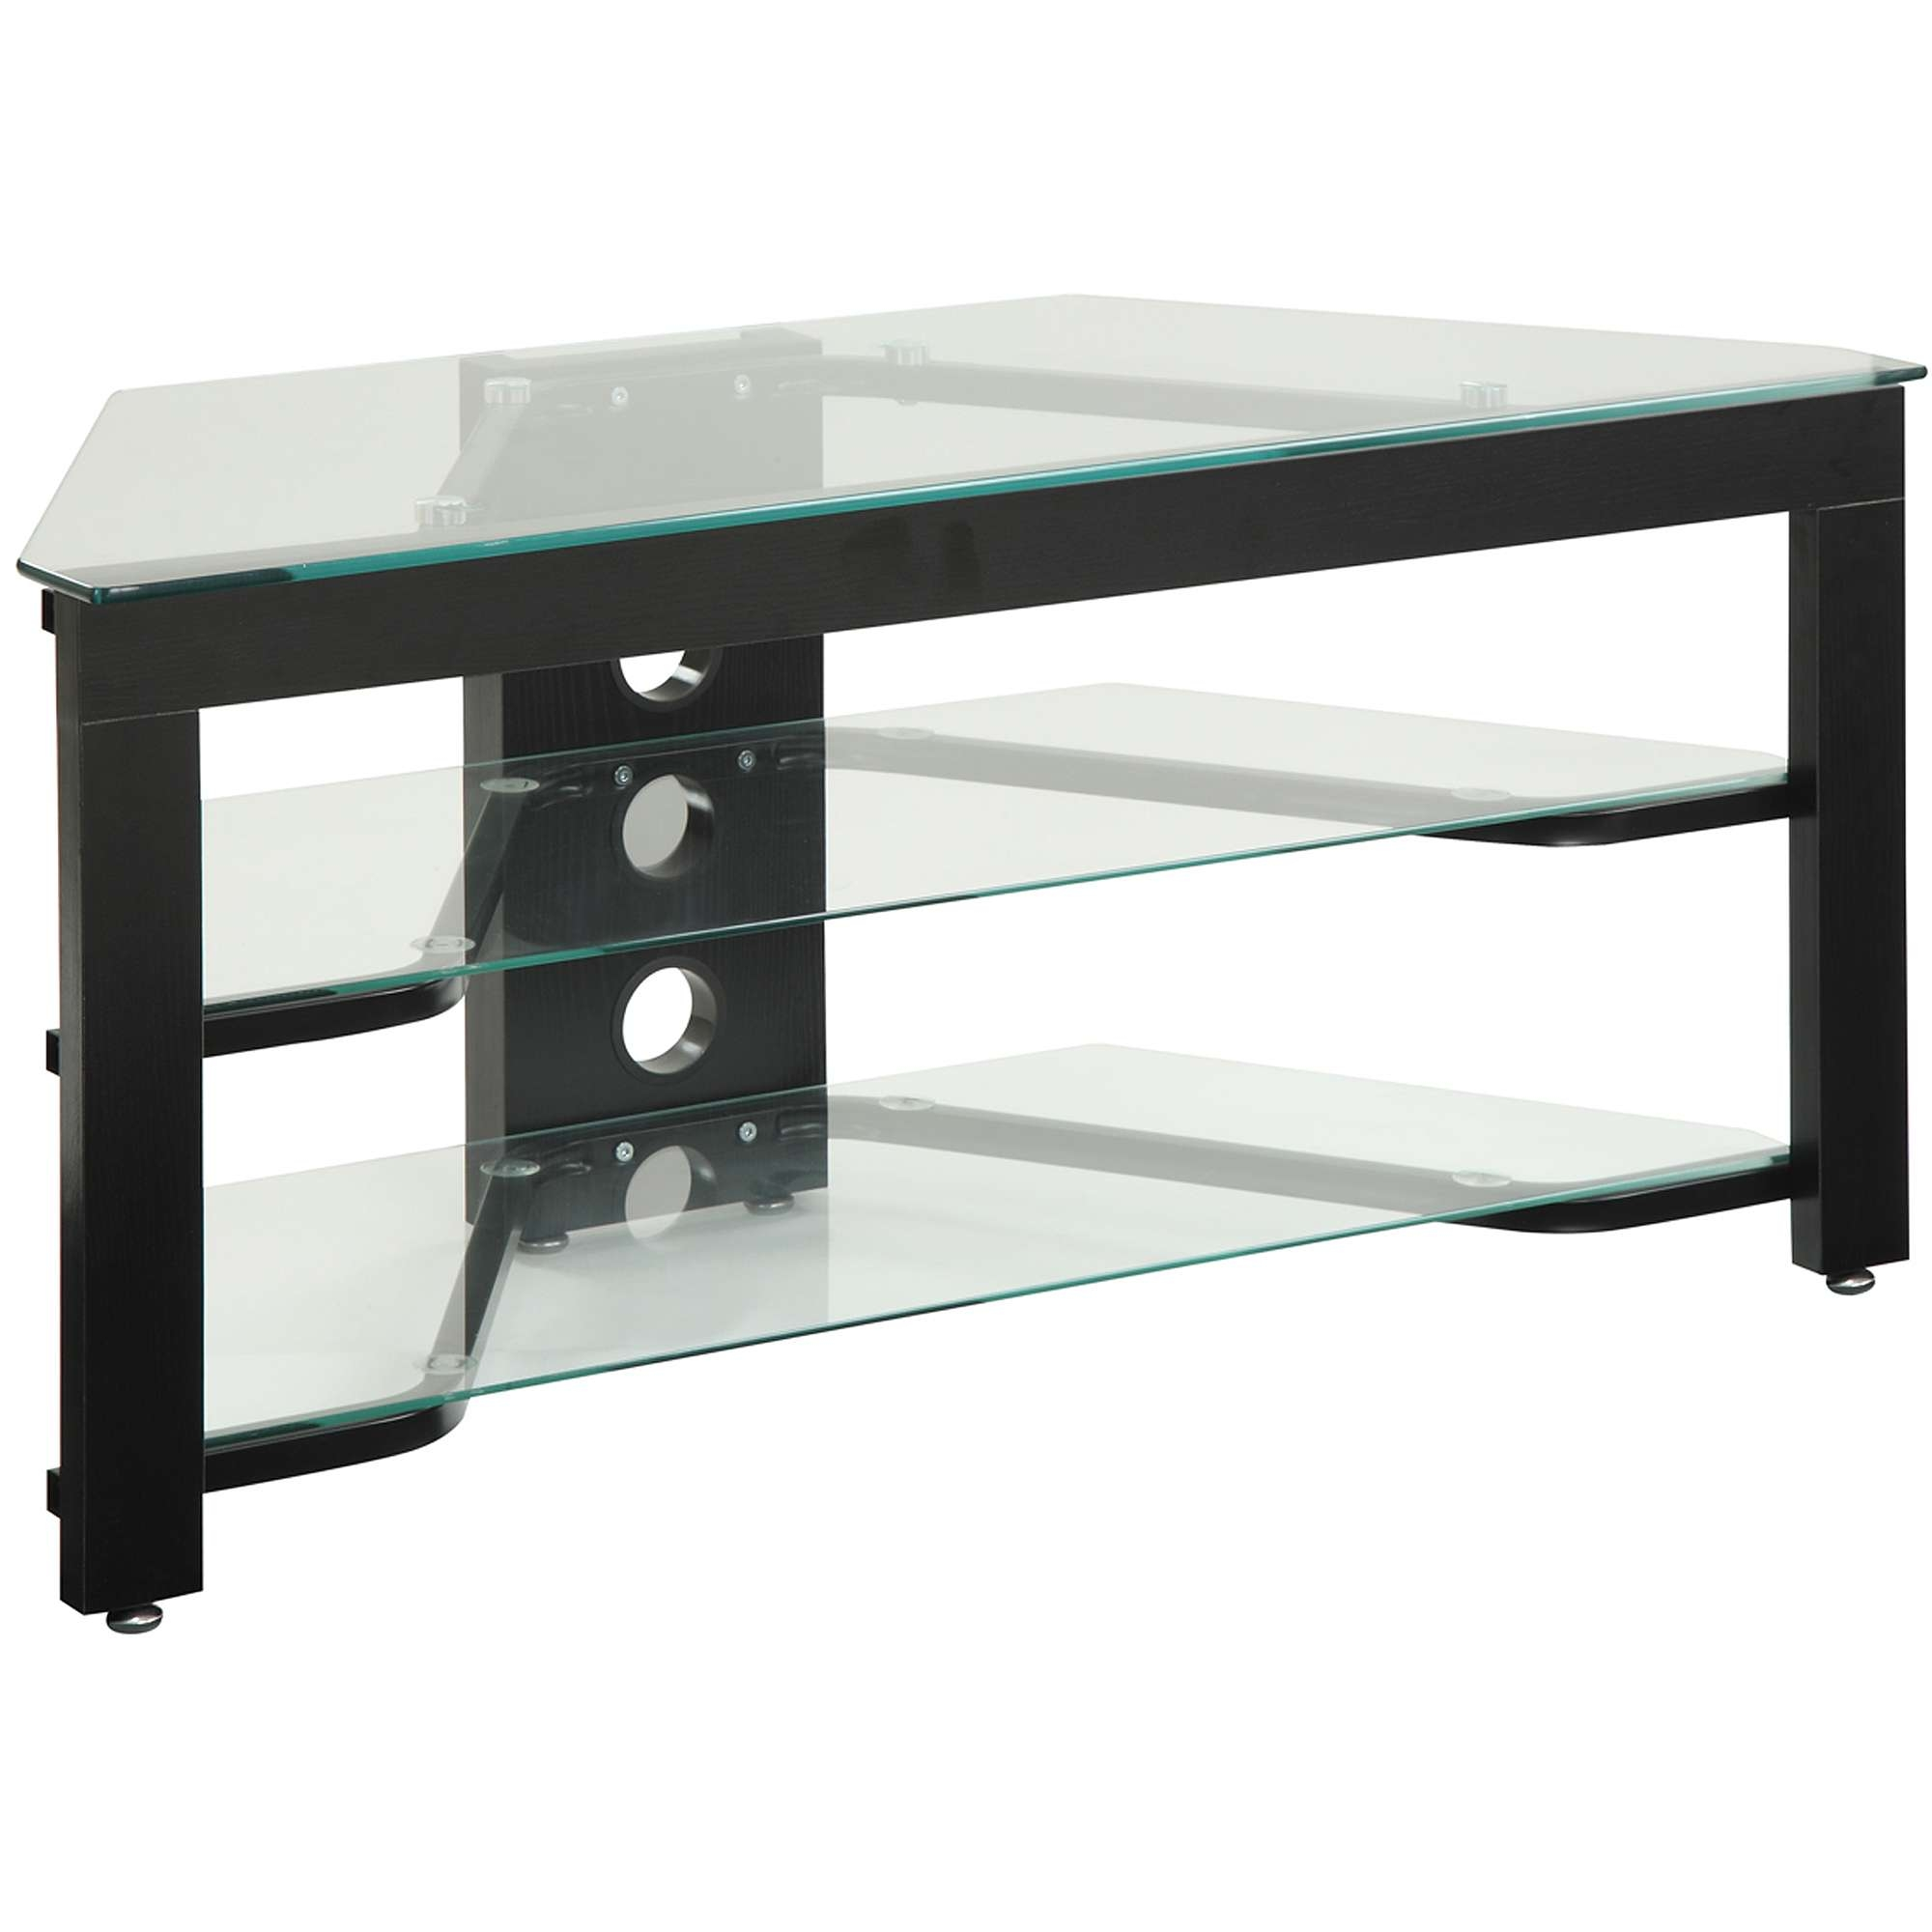 Convenience Concepts Designs2go Wood And Glass Tv Stand For Tvs Up Within Wood And Metal Tv Stands (View 12 of 15)